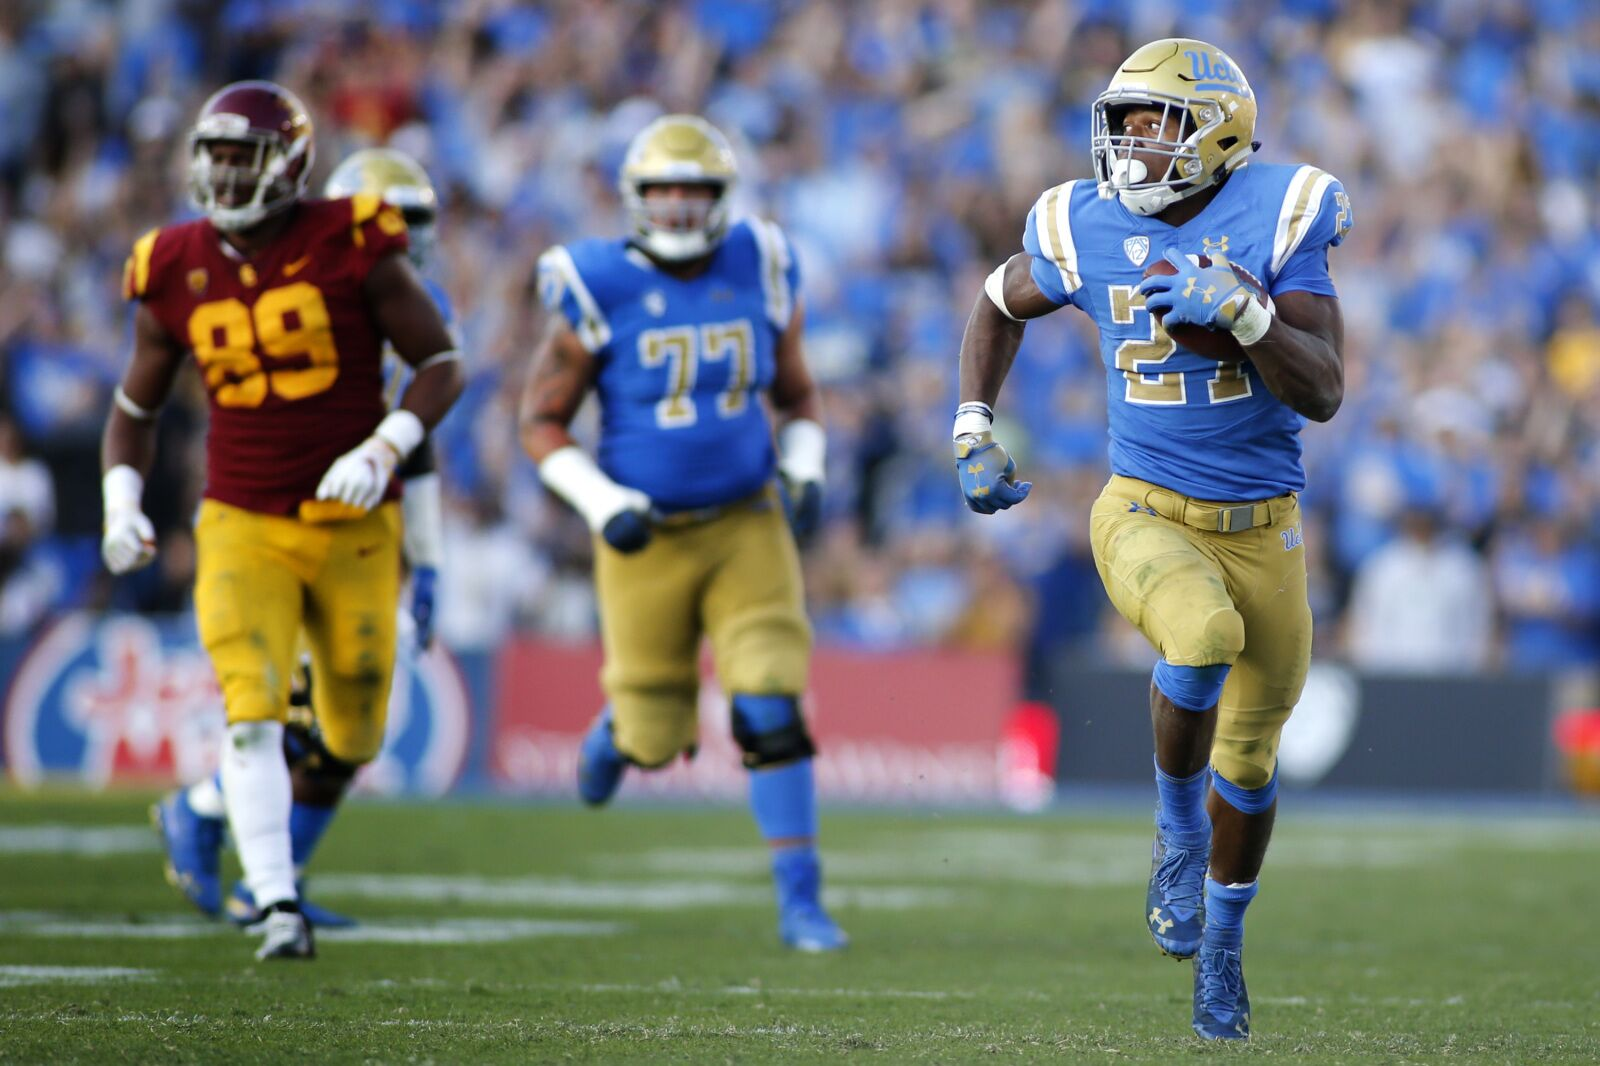 UCLA Football 2019: 100 things to look for with 100 days until kickoff